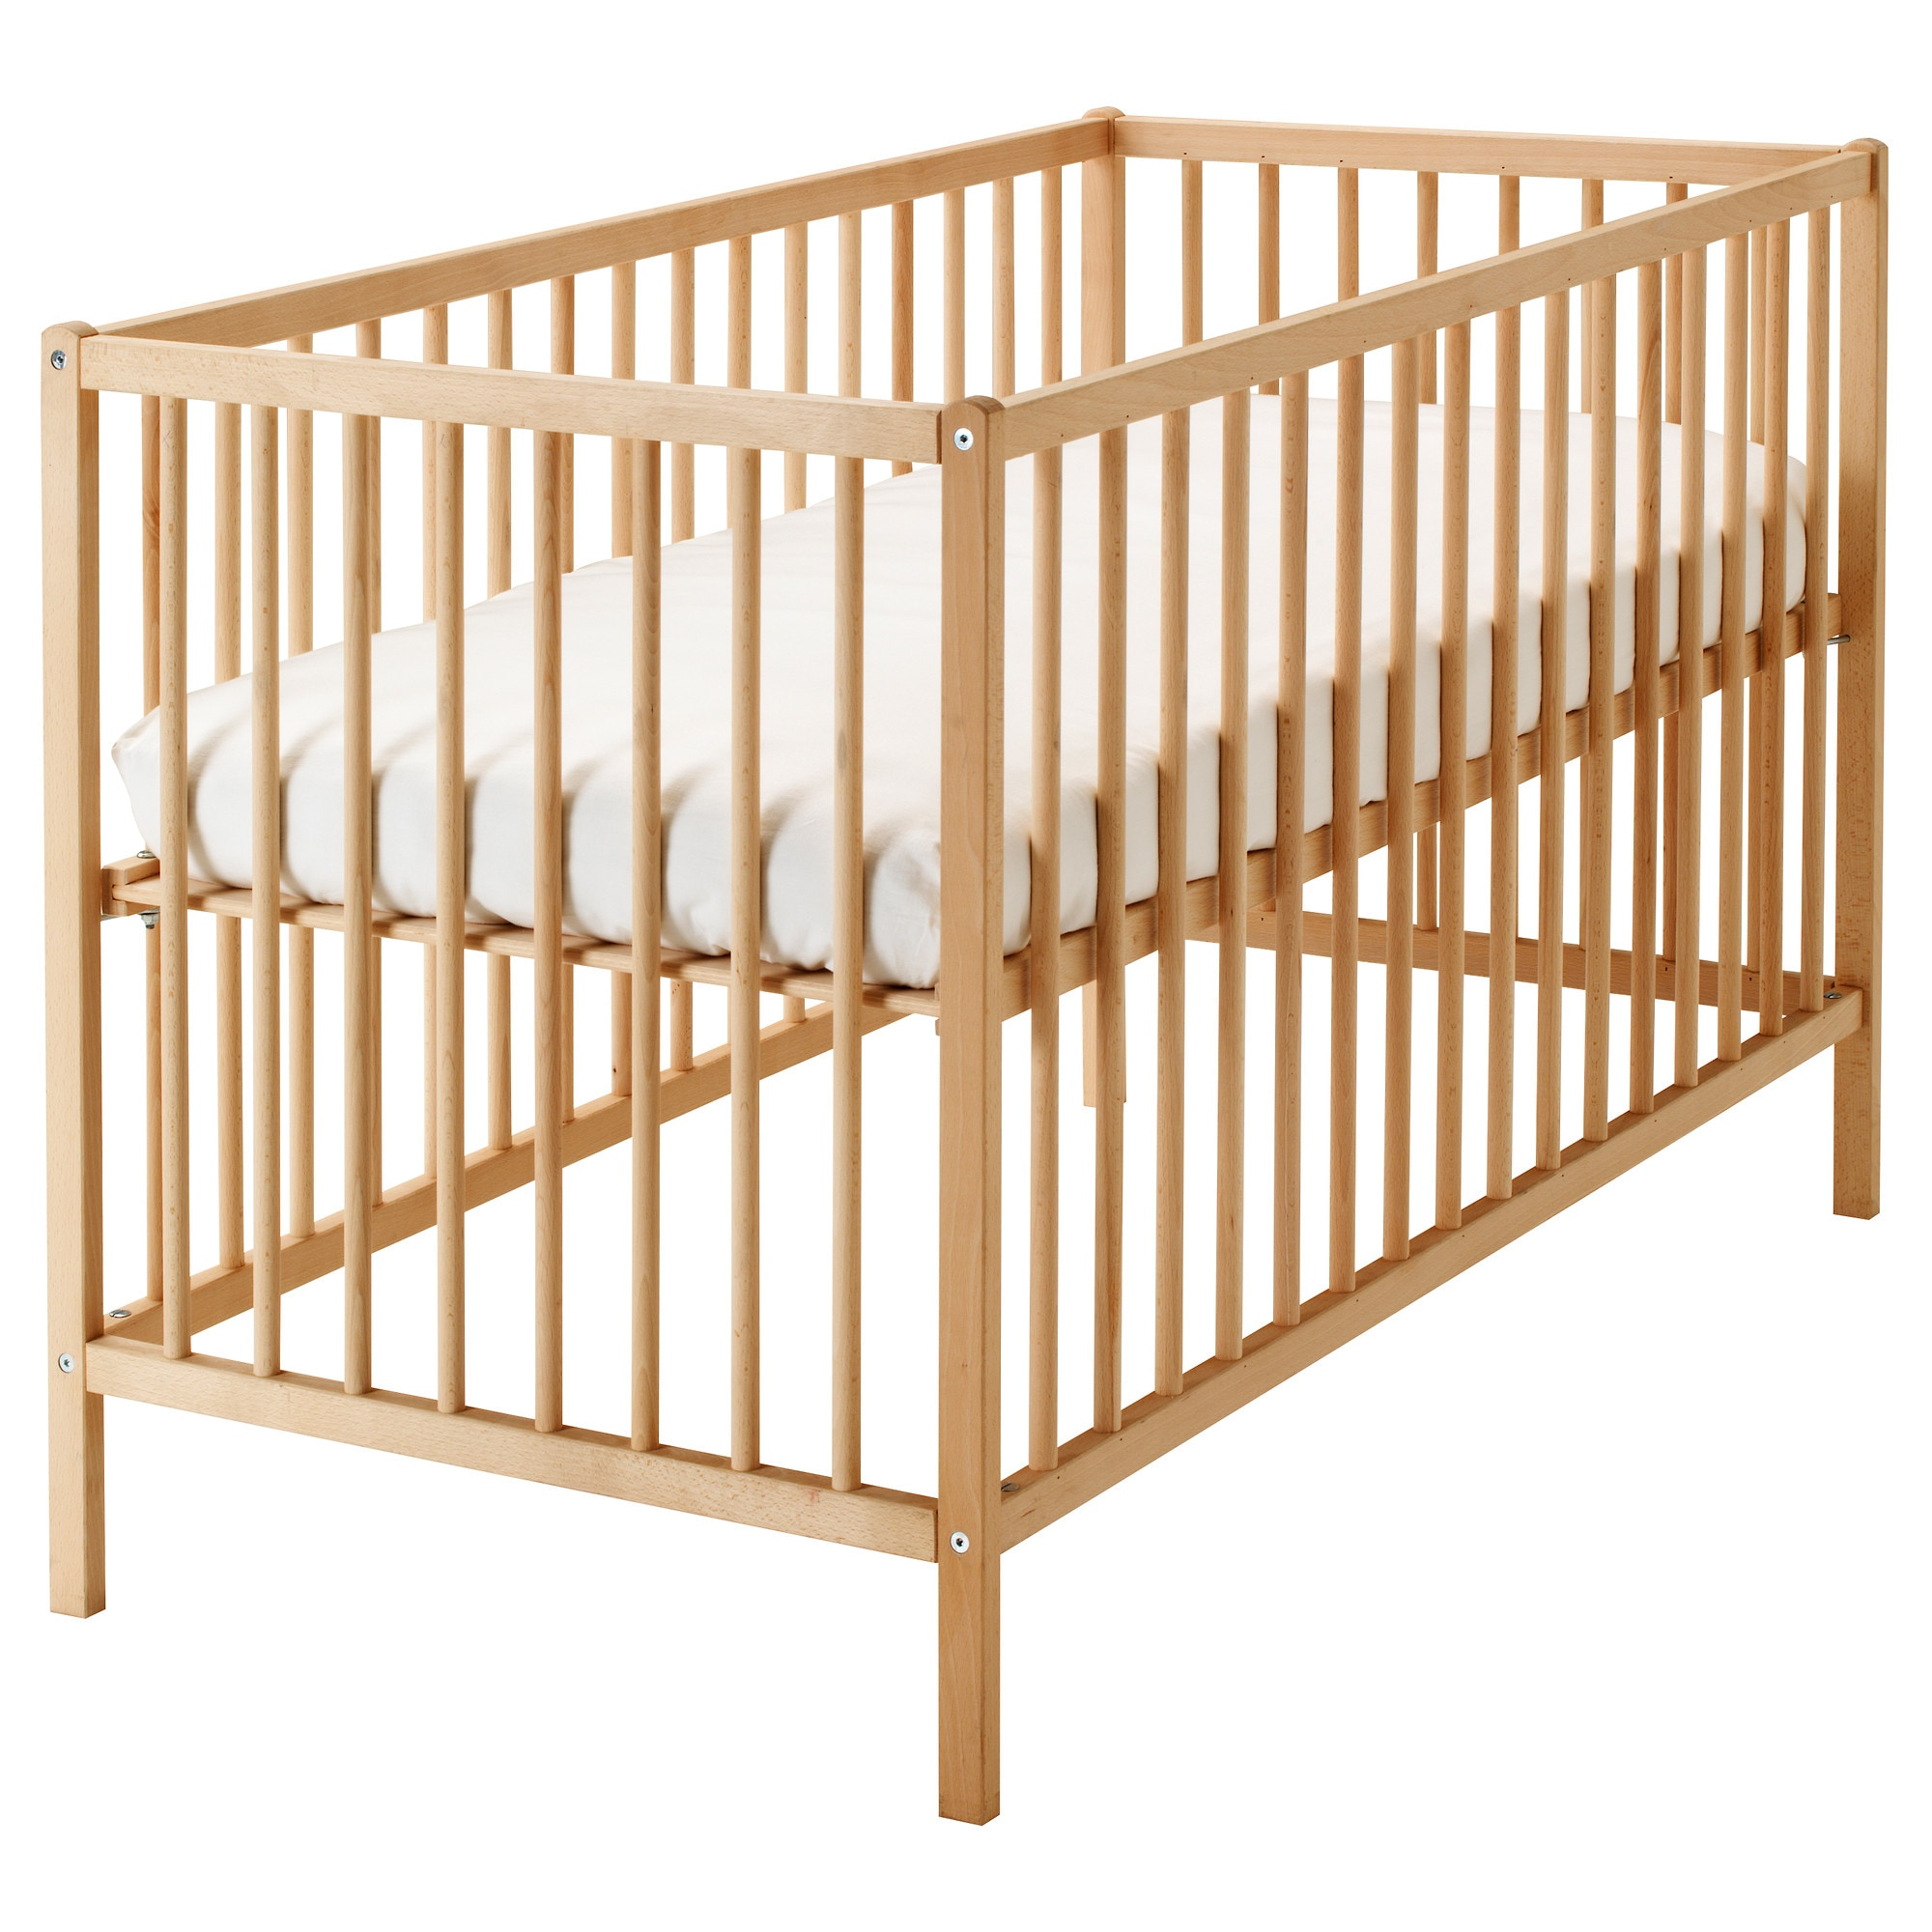 baby of bassinets walmart a size awesome in r graco cribs bassinet reviewsa full under target crib amazon ikea sundvik at f outdoor large cheap for sale with babies us toddlers playpen marvelous